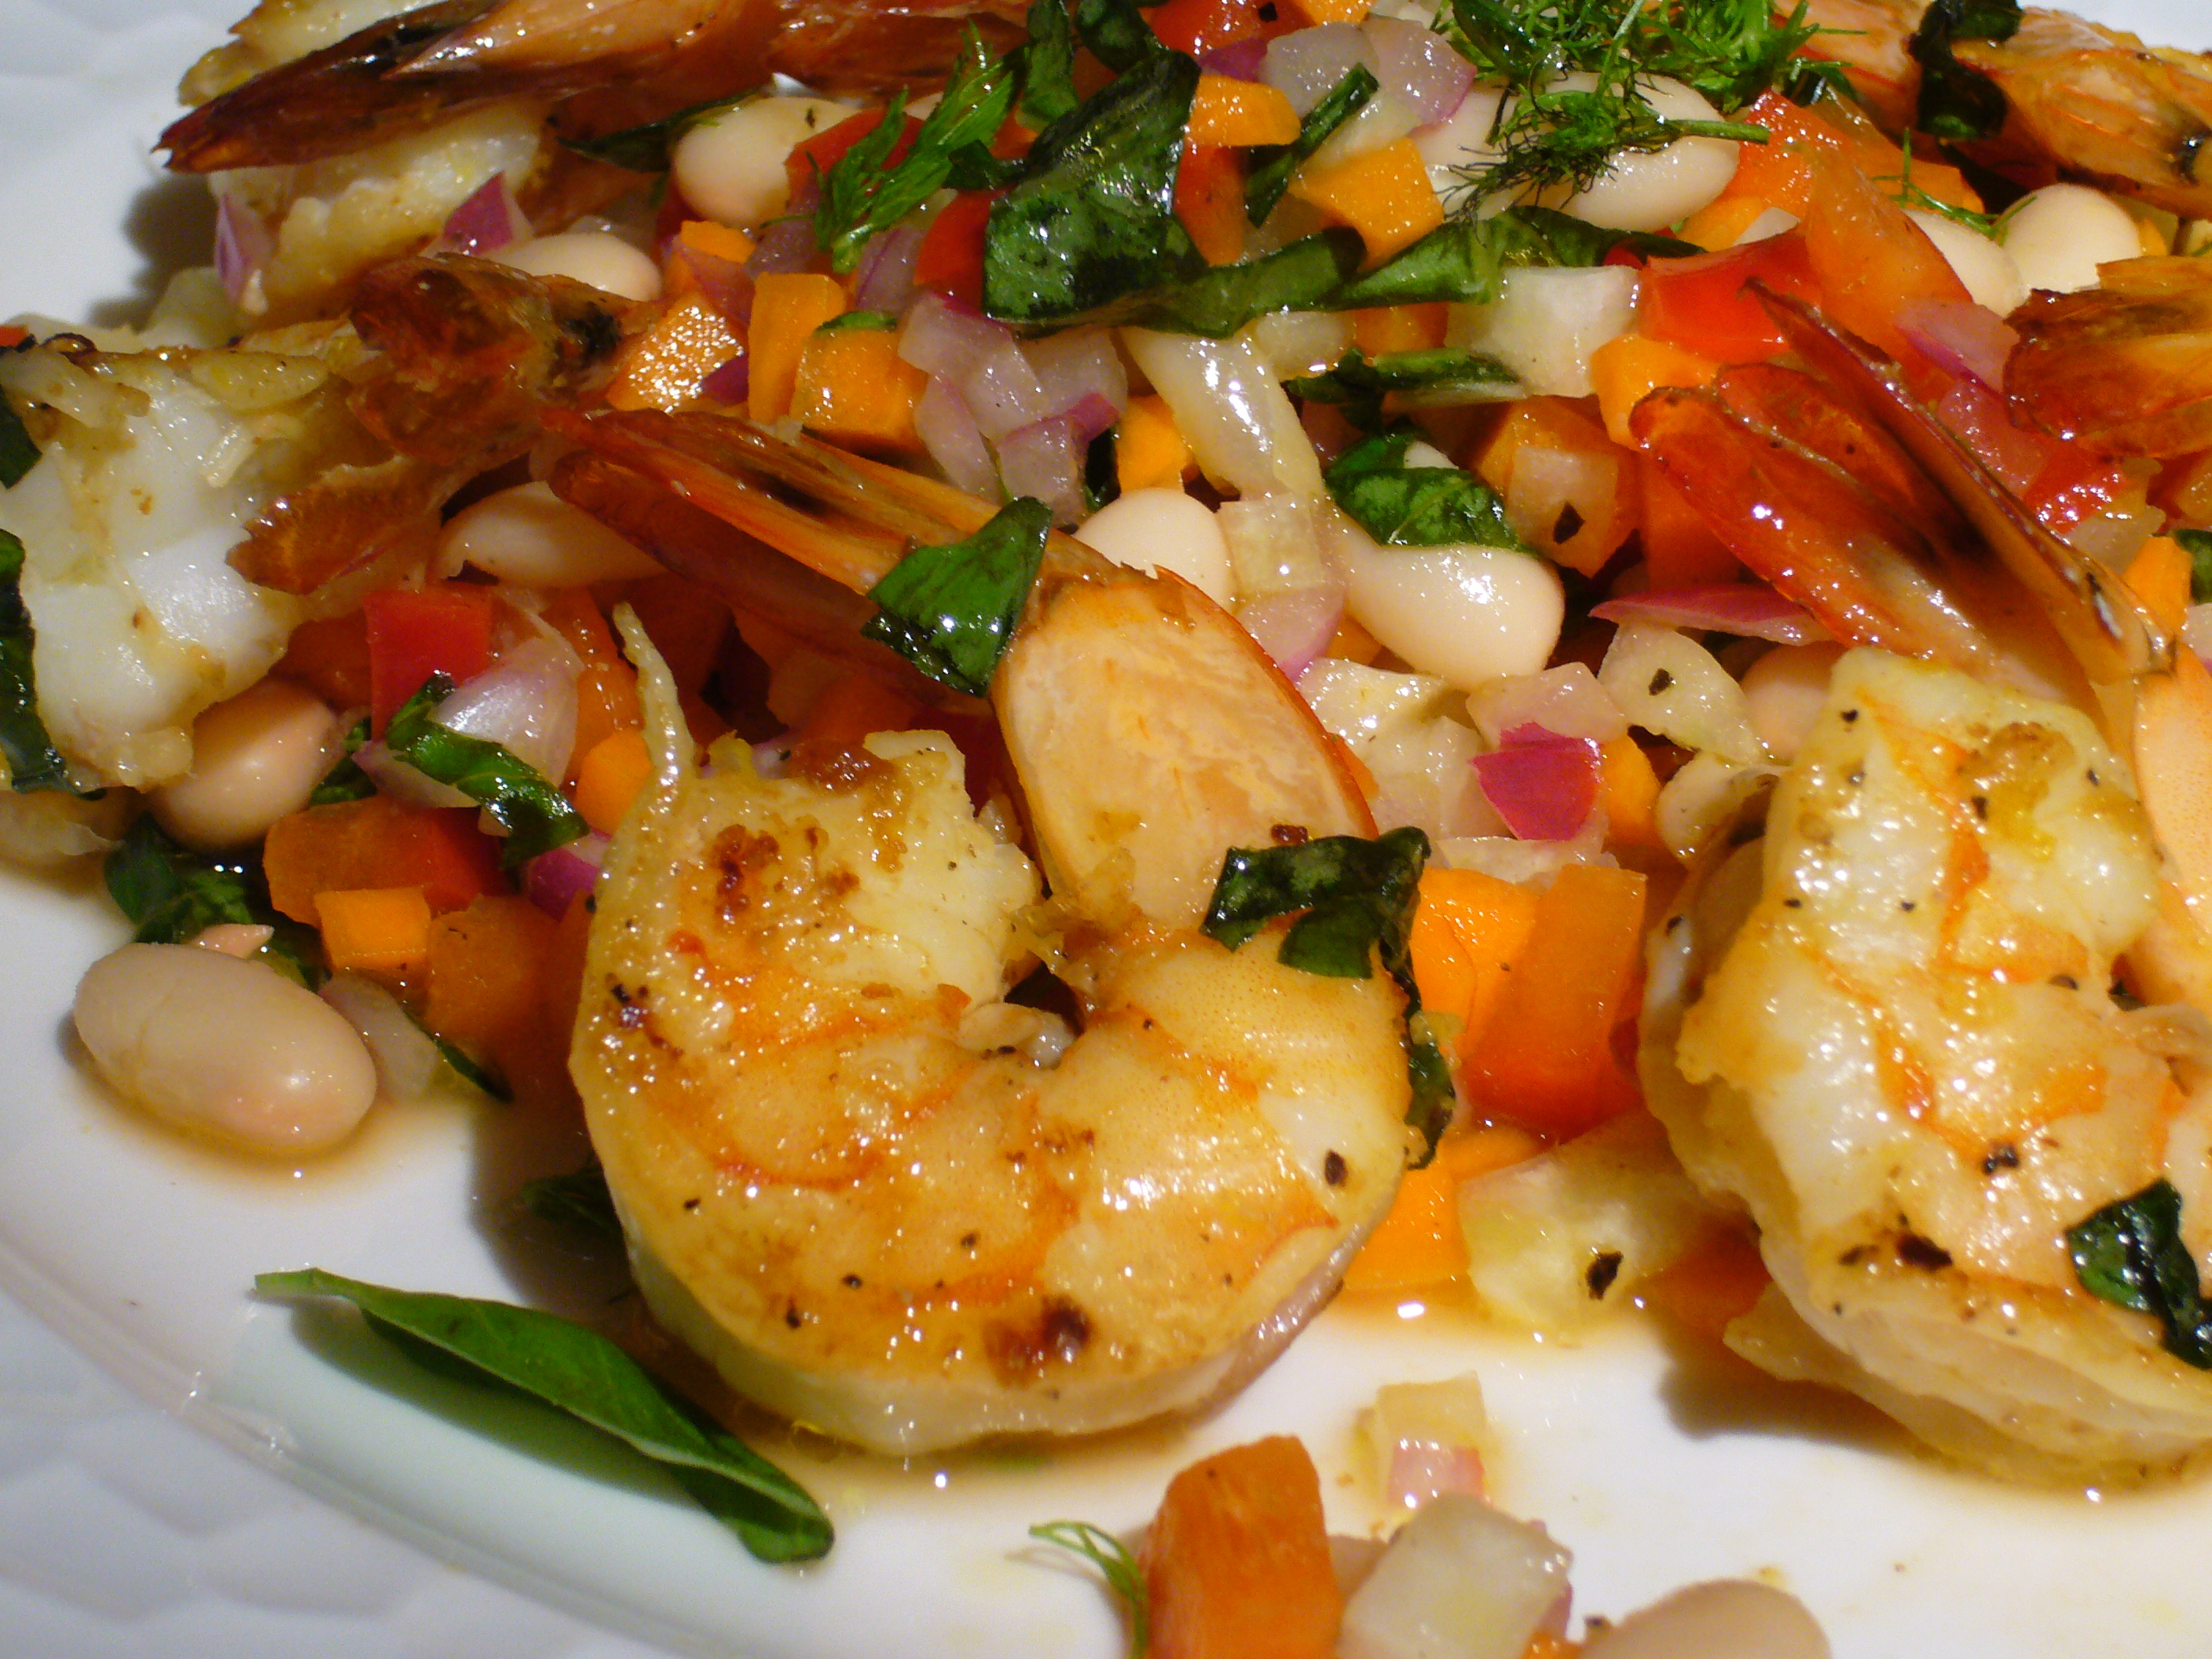 Pan-Seared Lemon-Basil Shrimp with White Bean Salad